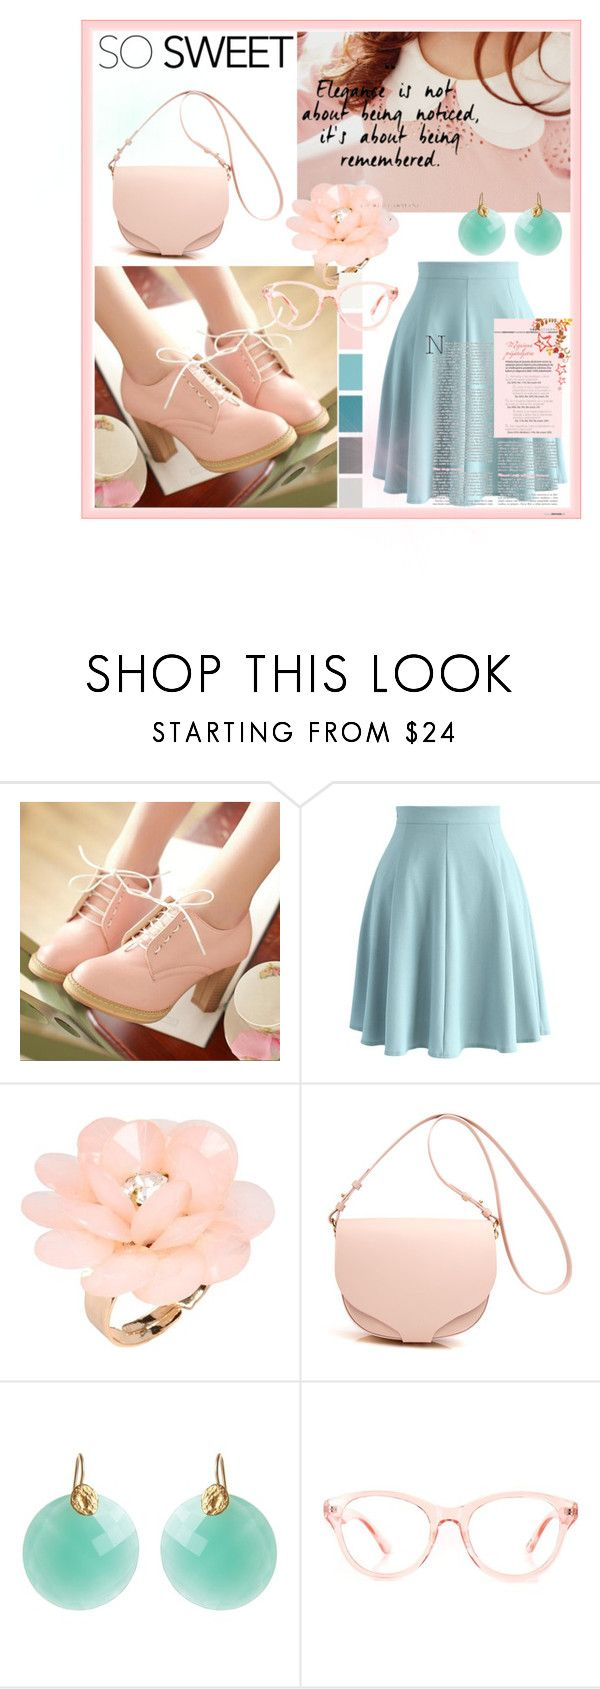 """""""Pretty in pastels."""" by gema-z ❤ liked on Polyvore featuring Chicwish, Dettagli, Seed Design, Kastur Jewels, pastel and prettyinpastels"""